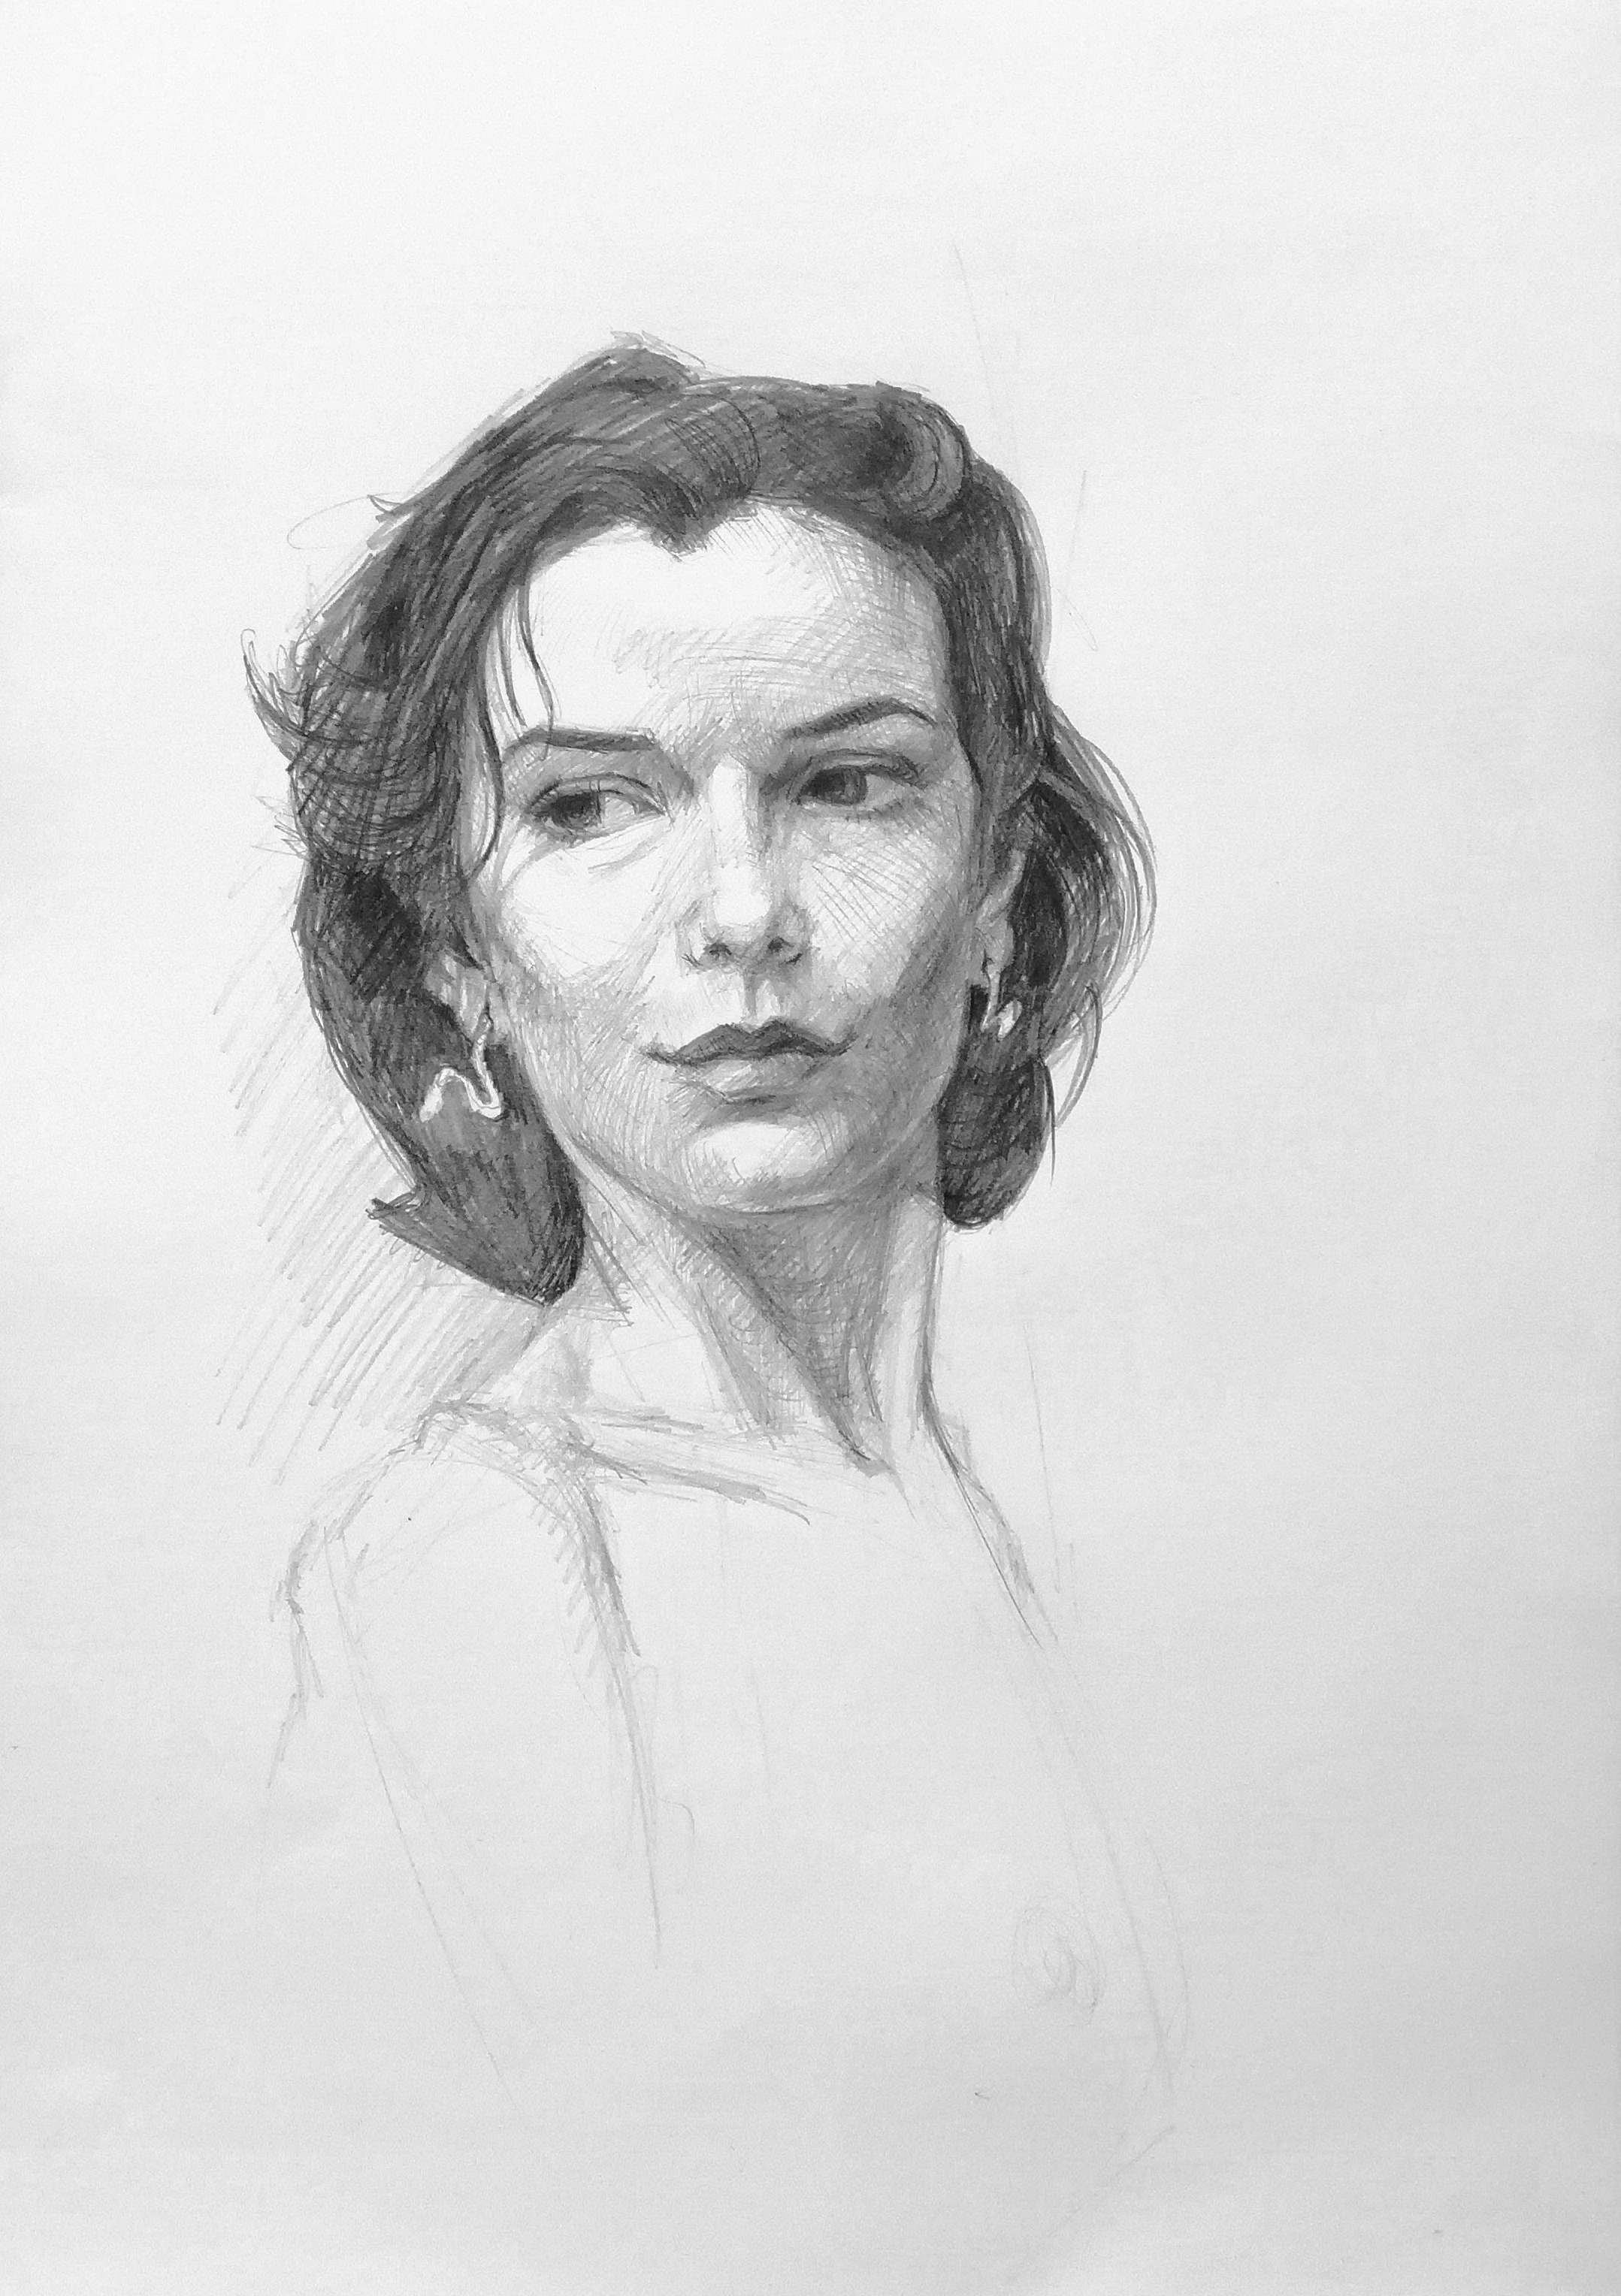 3 hour portrait from life model